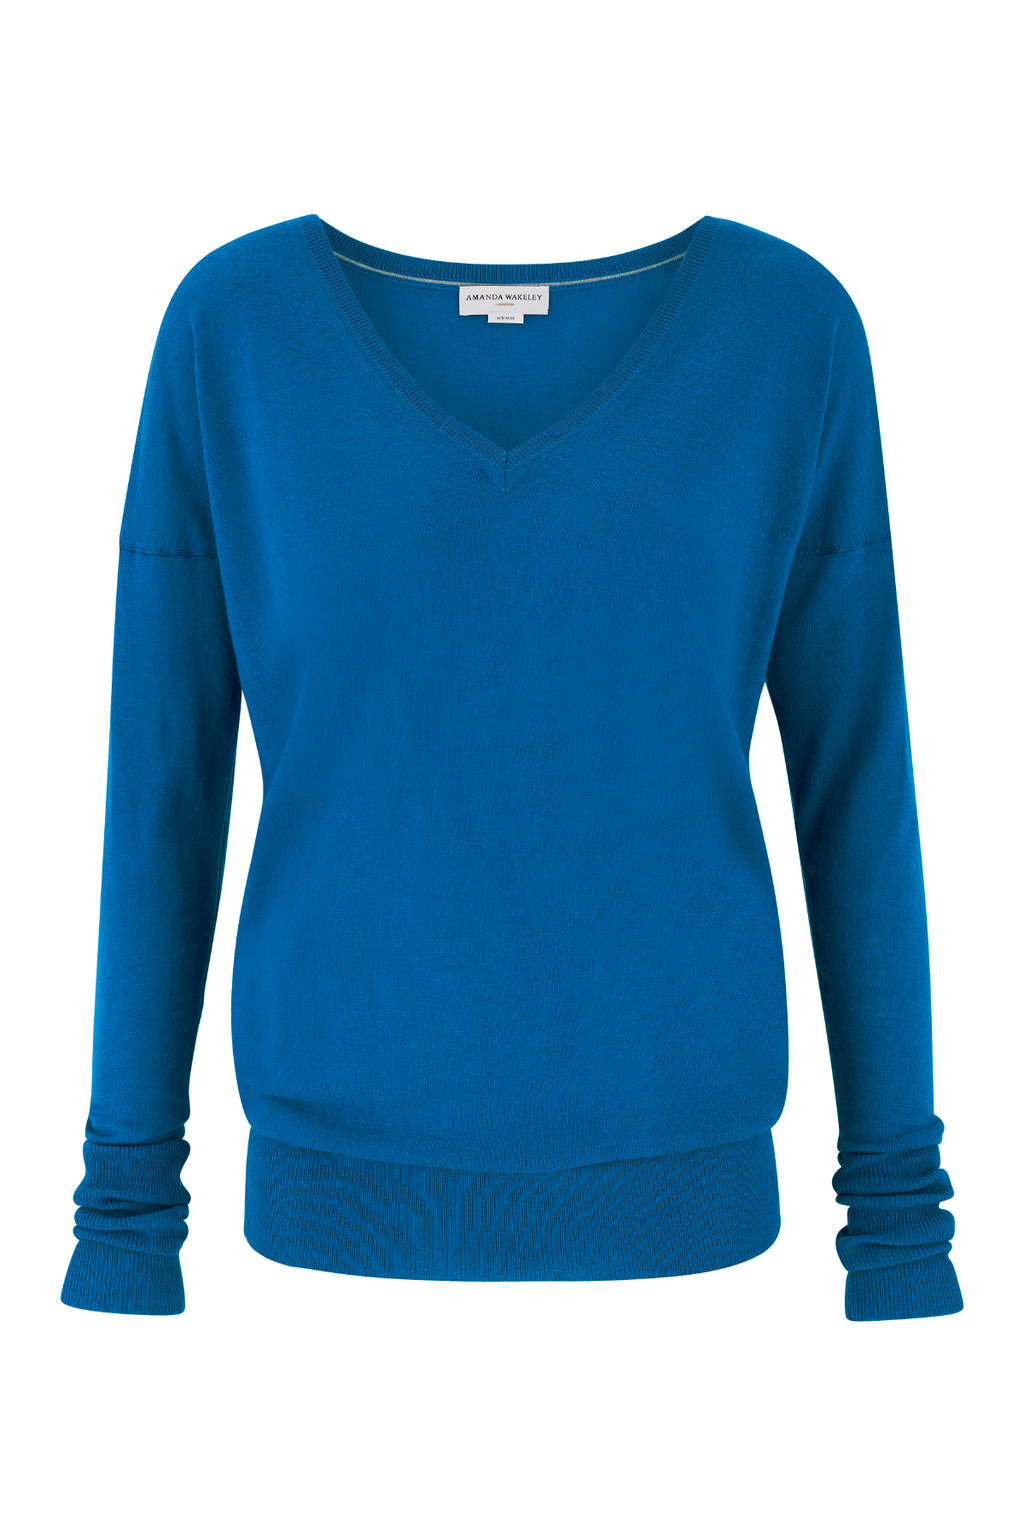 Hepburn Cobalt Cashmere V Neck - neckline: v-neck; pattern: plain; style: standard; predominant colour: royal blue; occasions: casual; length: standard; fit: slim fit; fibres: cashmere - 100%; sleeve length: long sleeve; sleeve style: standard; texture group: knits/crochet; pattern type: fabric; season: s/s 2016